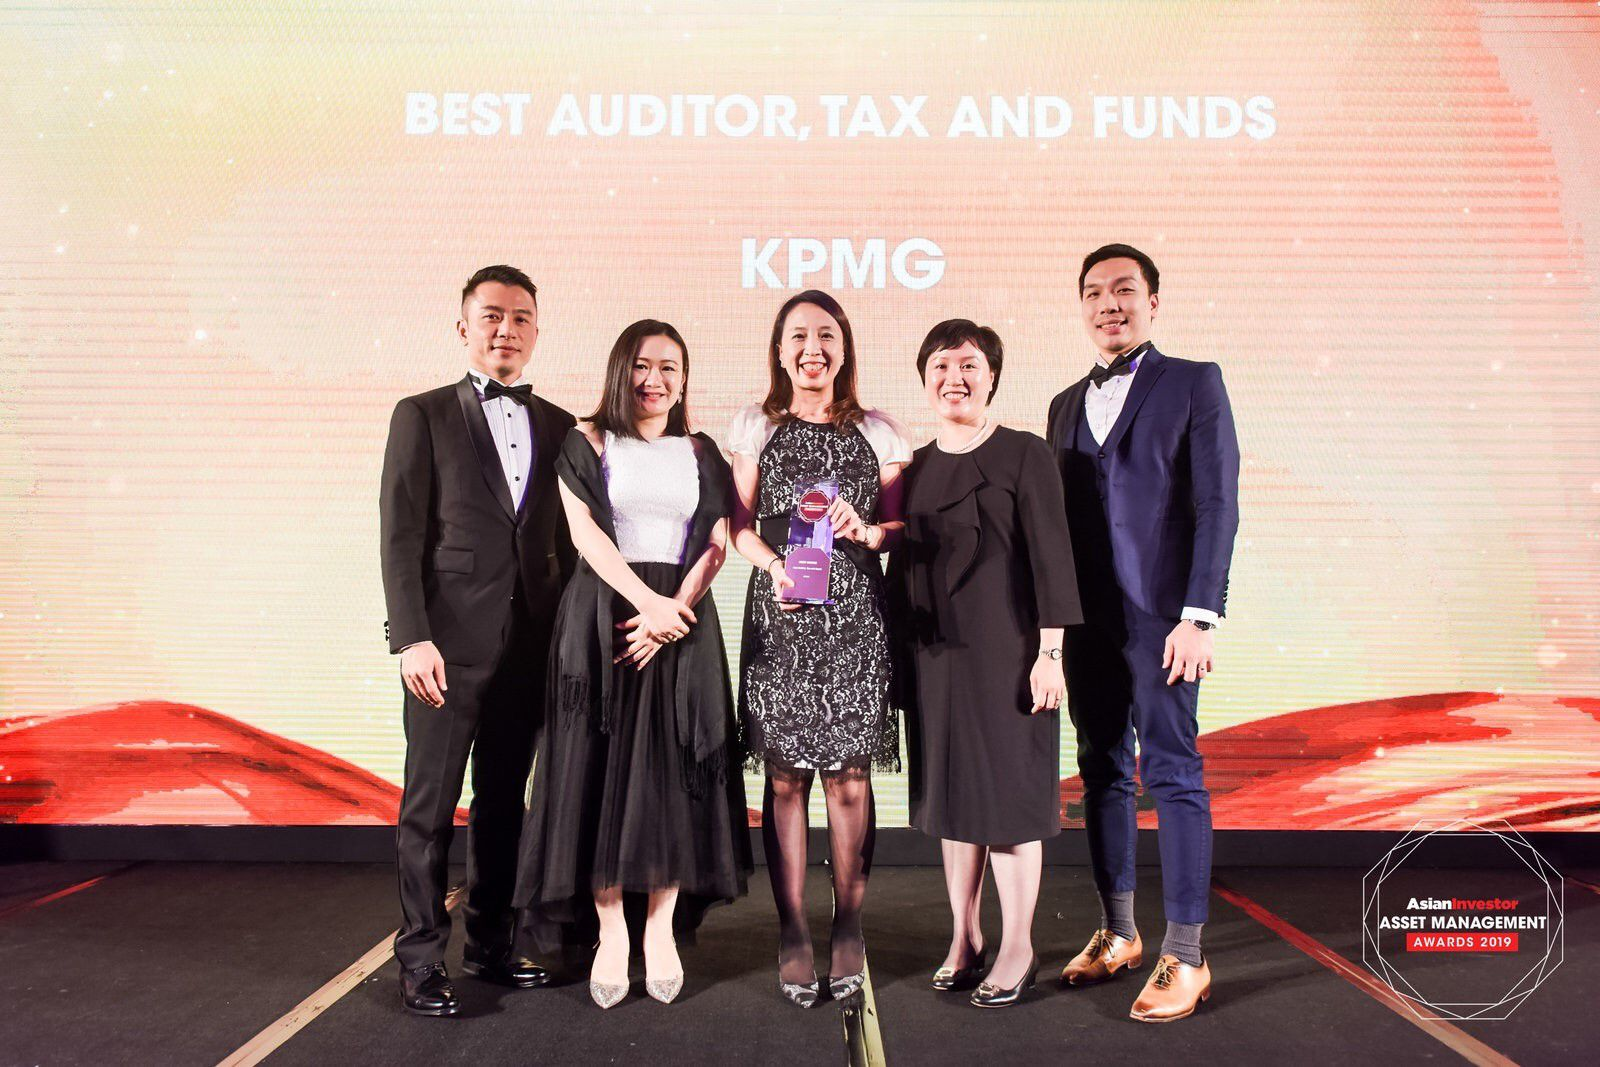 KPMG partners on the stage at the AsianInvestor Asset Management Awards 2019